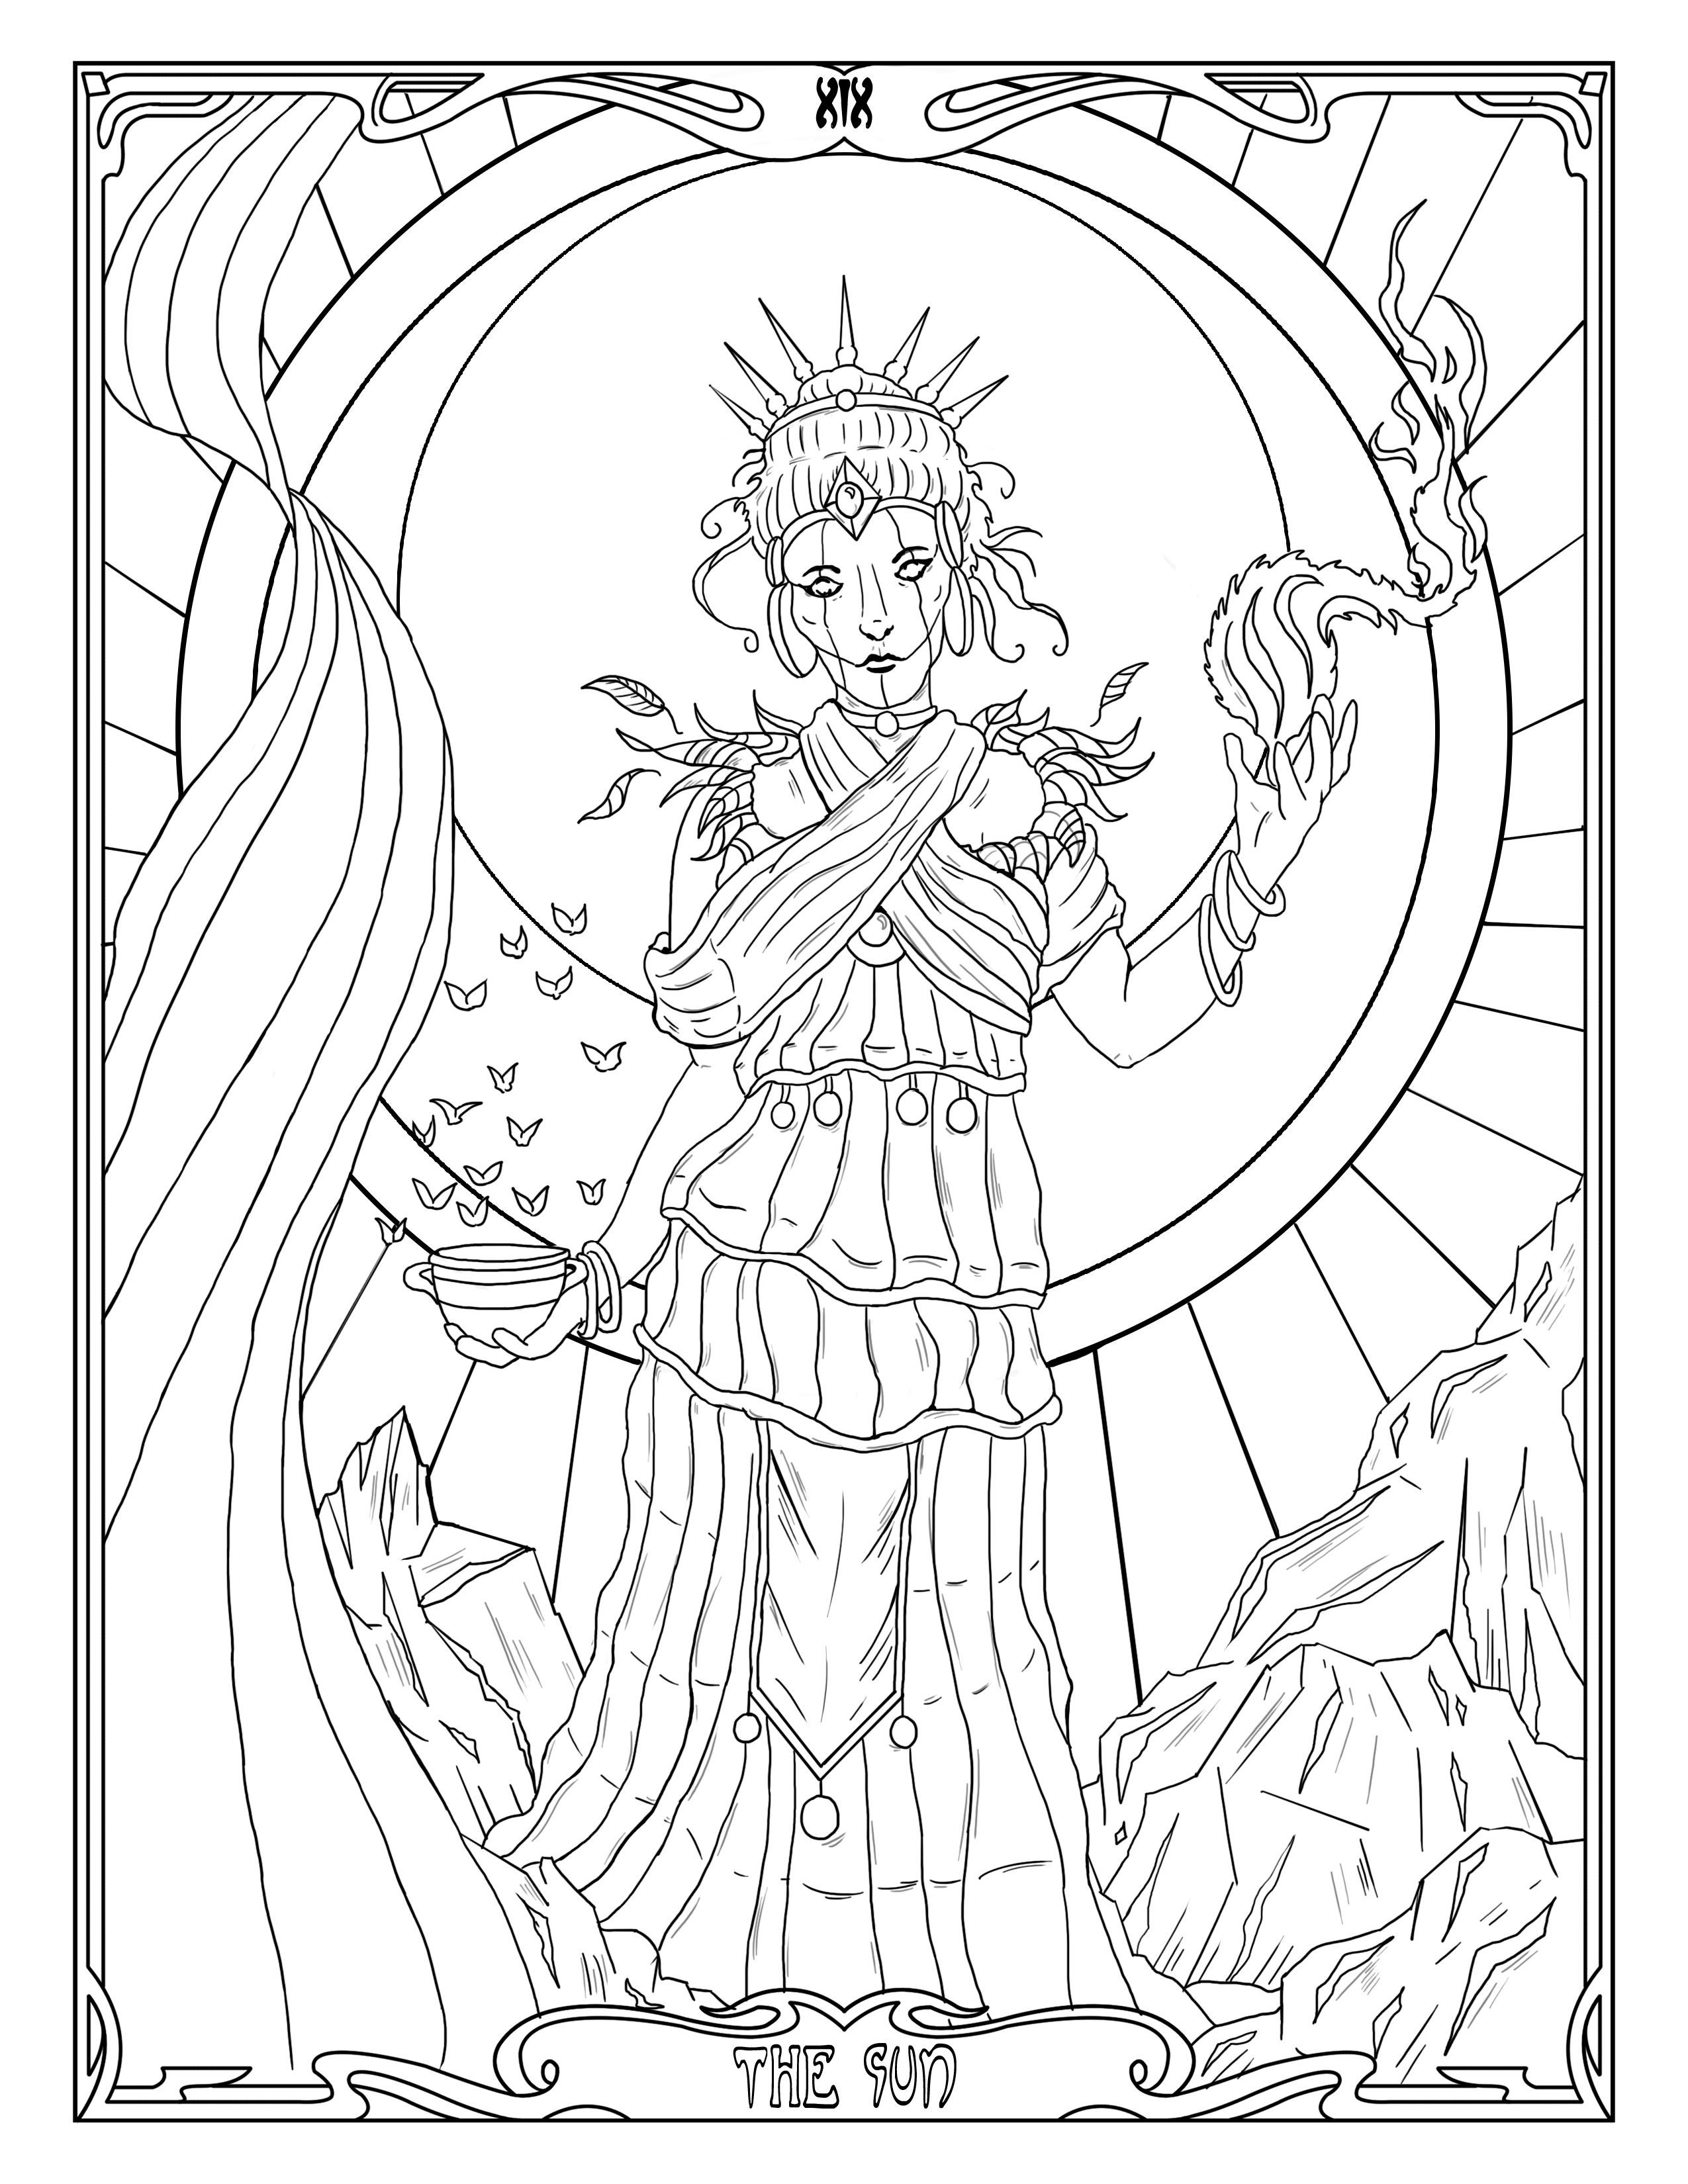 The sun witch light and life hope printable coloring pages